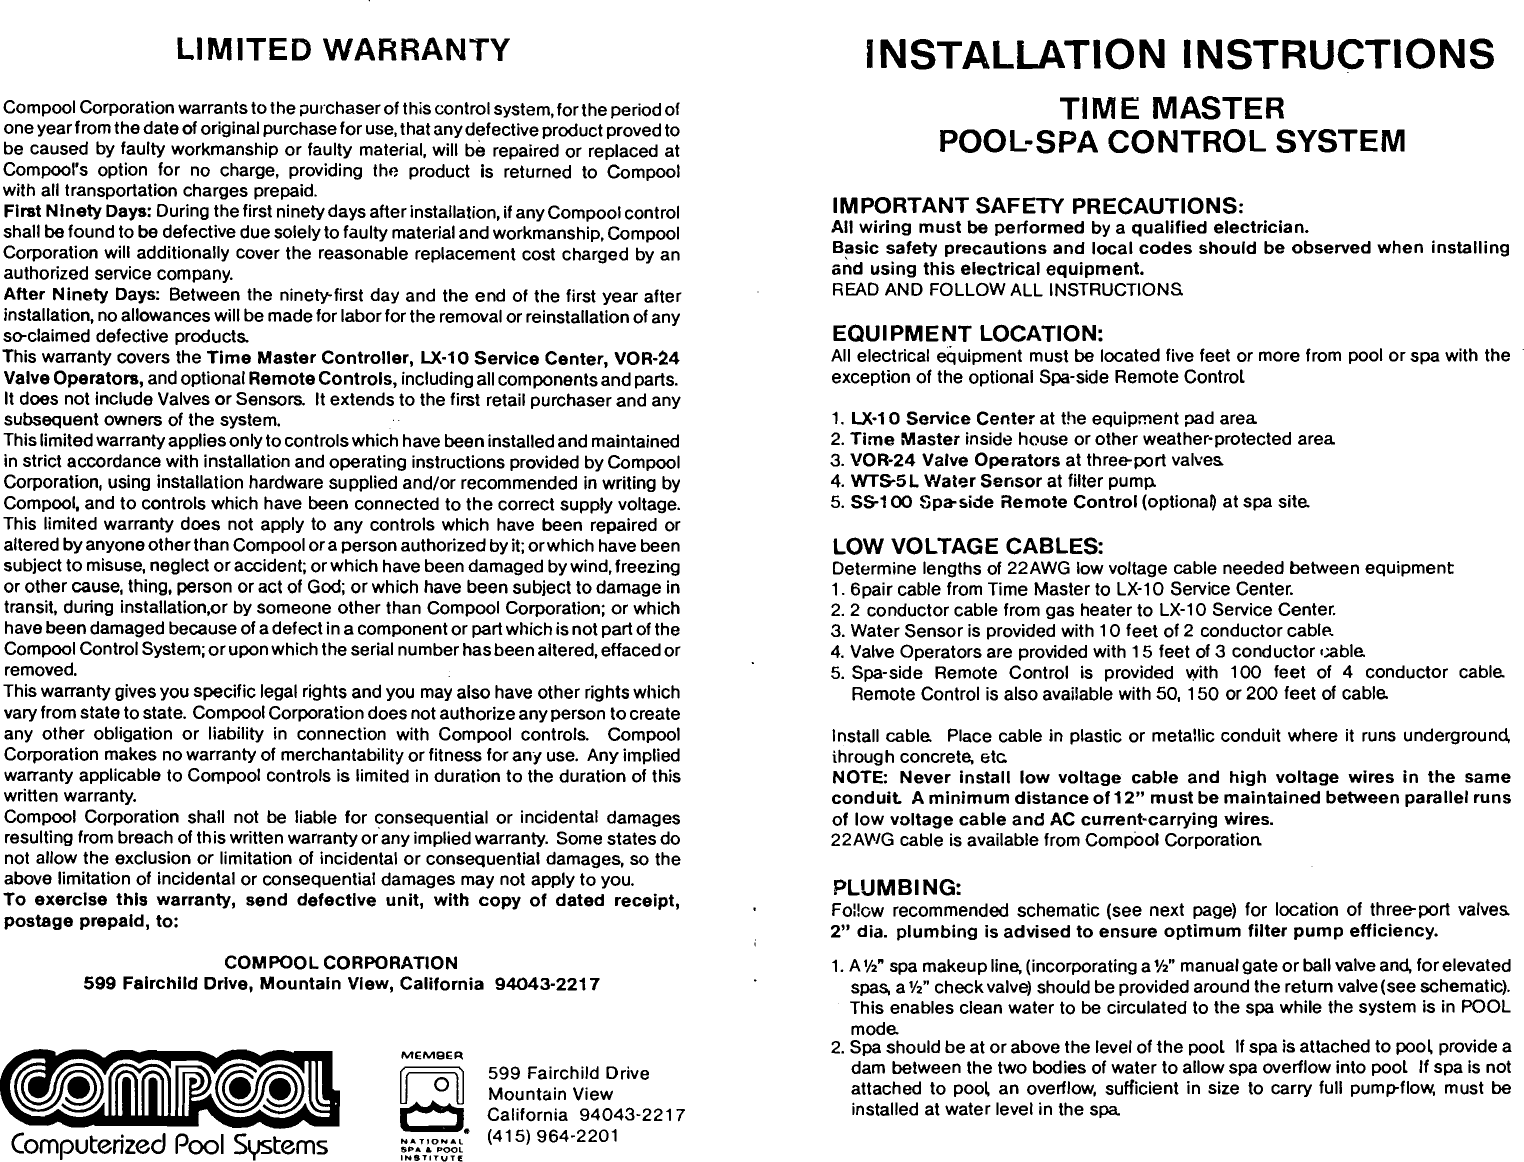 Pentair Pool Spa Control System Time Master Users Manual